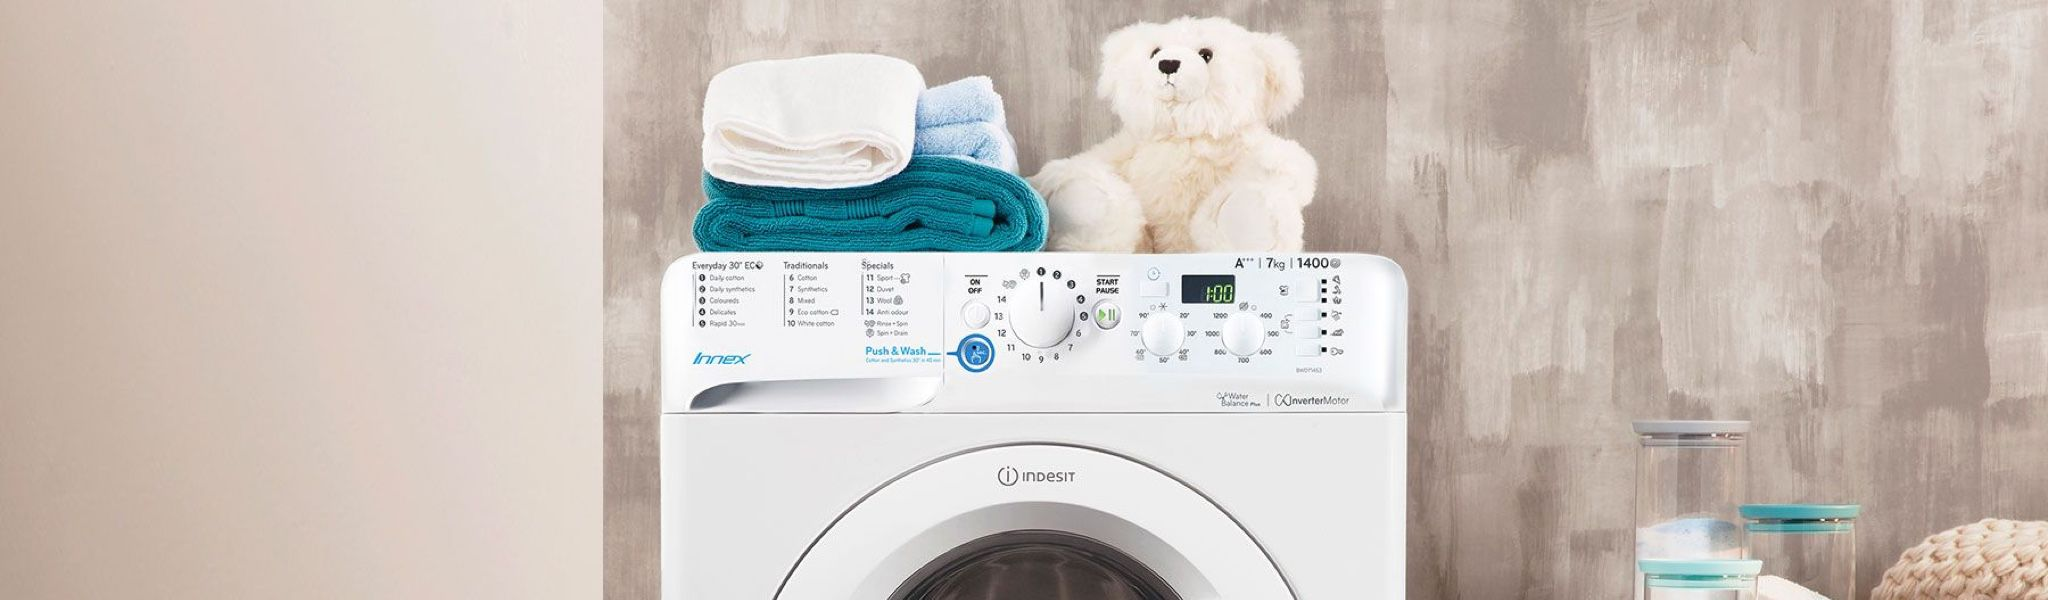 Troubleshooting your washing machine